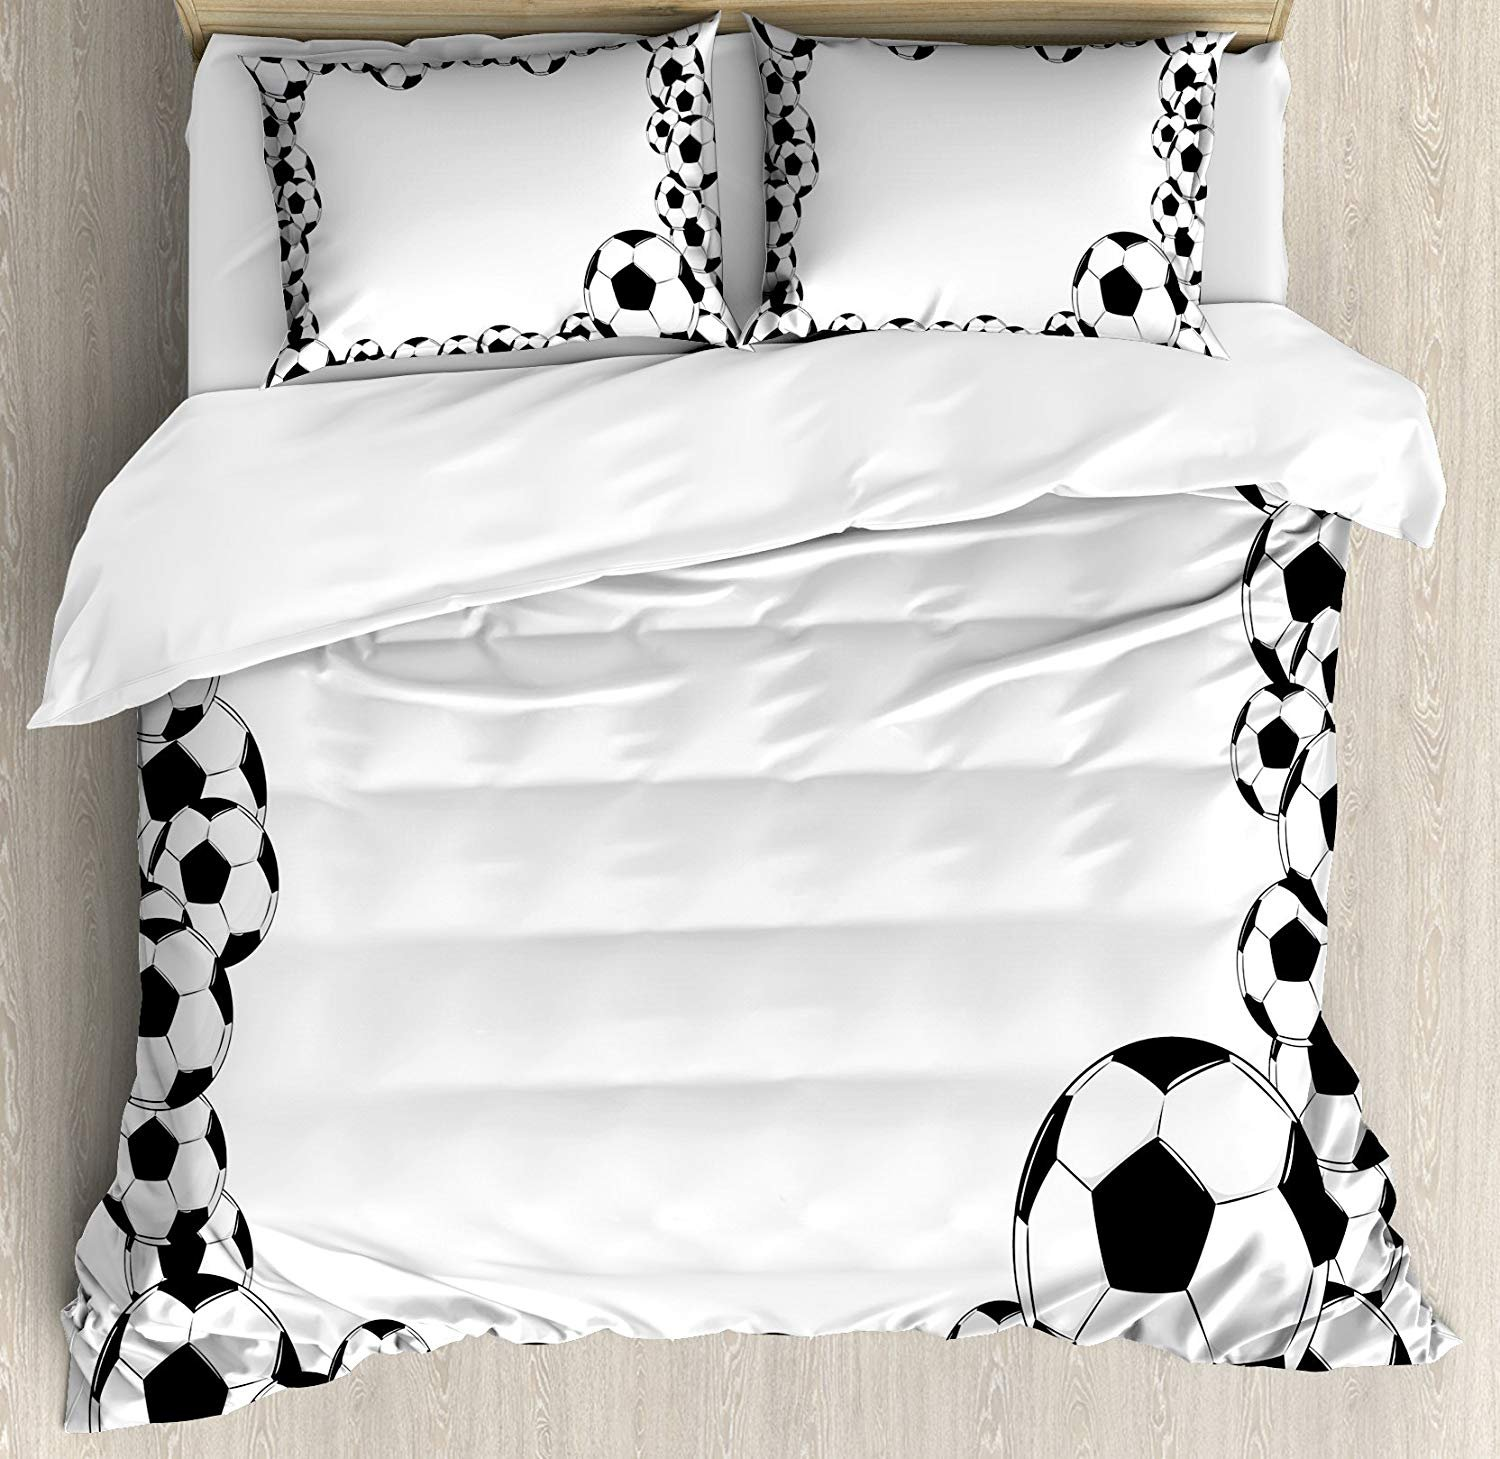 Full Size Soccer 3 PCS Duvet Cover Set, Monochrome Football Frame Pattern Abstract Illustration Playing Sports Game, Bedding Set Quilt Bedspread for Children/Teens/Adults/Kids, White Charcoal Grey